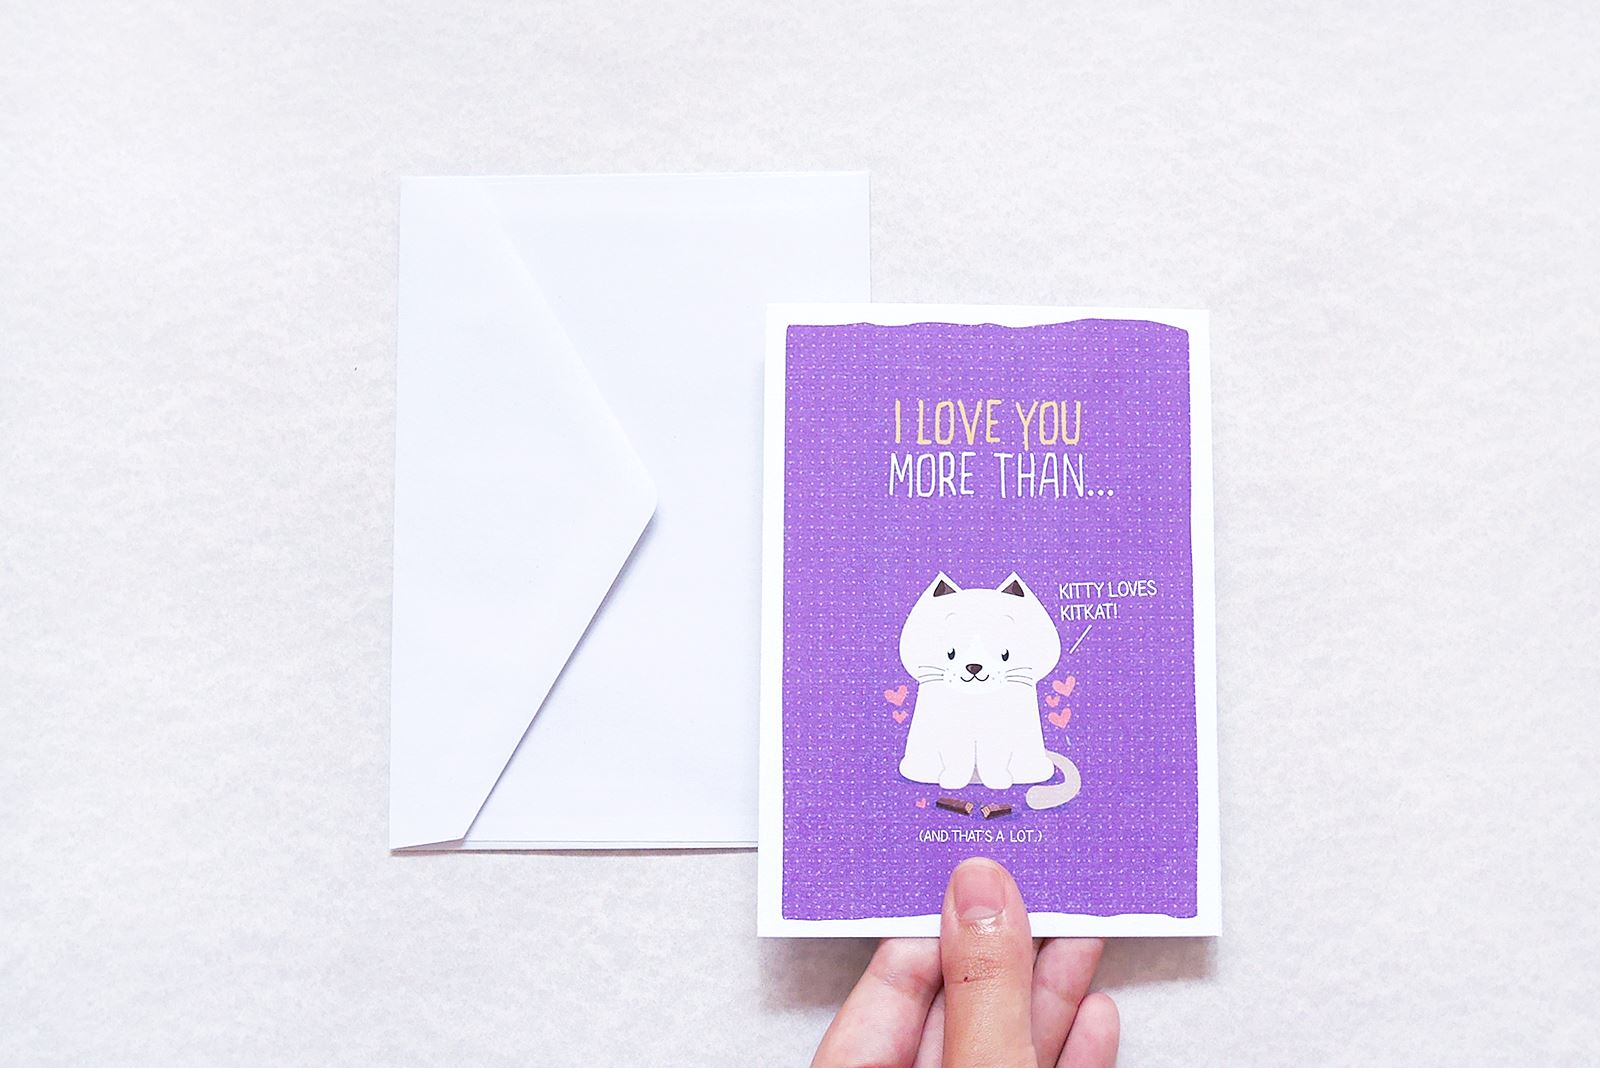 I love you more than kitty loves kit kat - Love Cards - TispyTopsy - Naiise